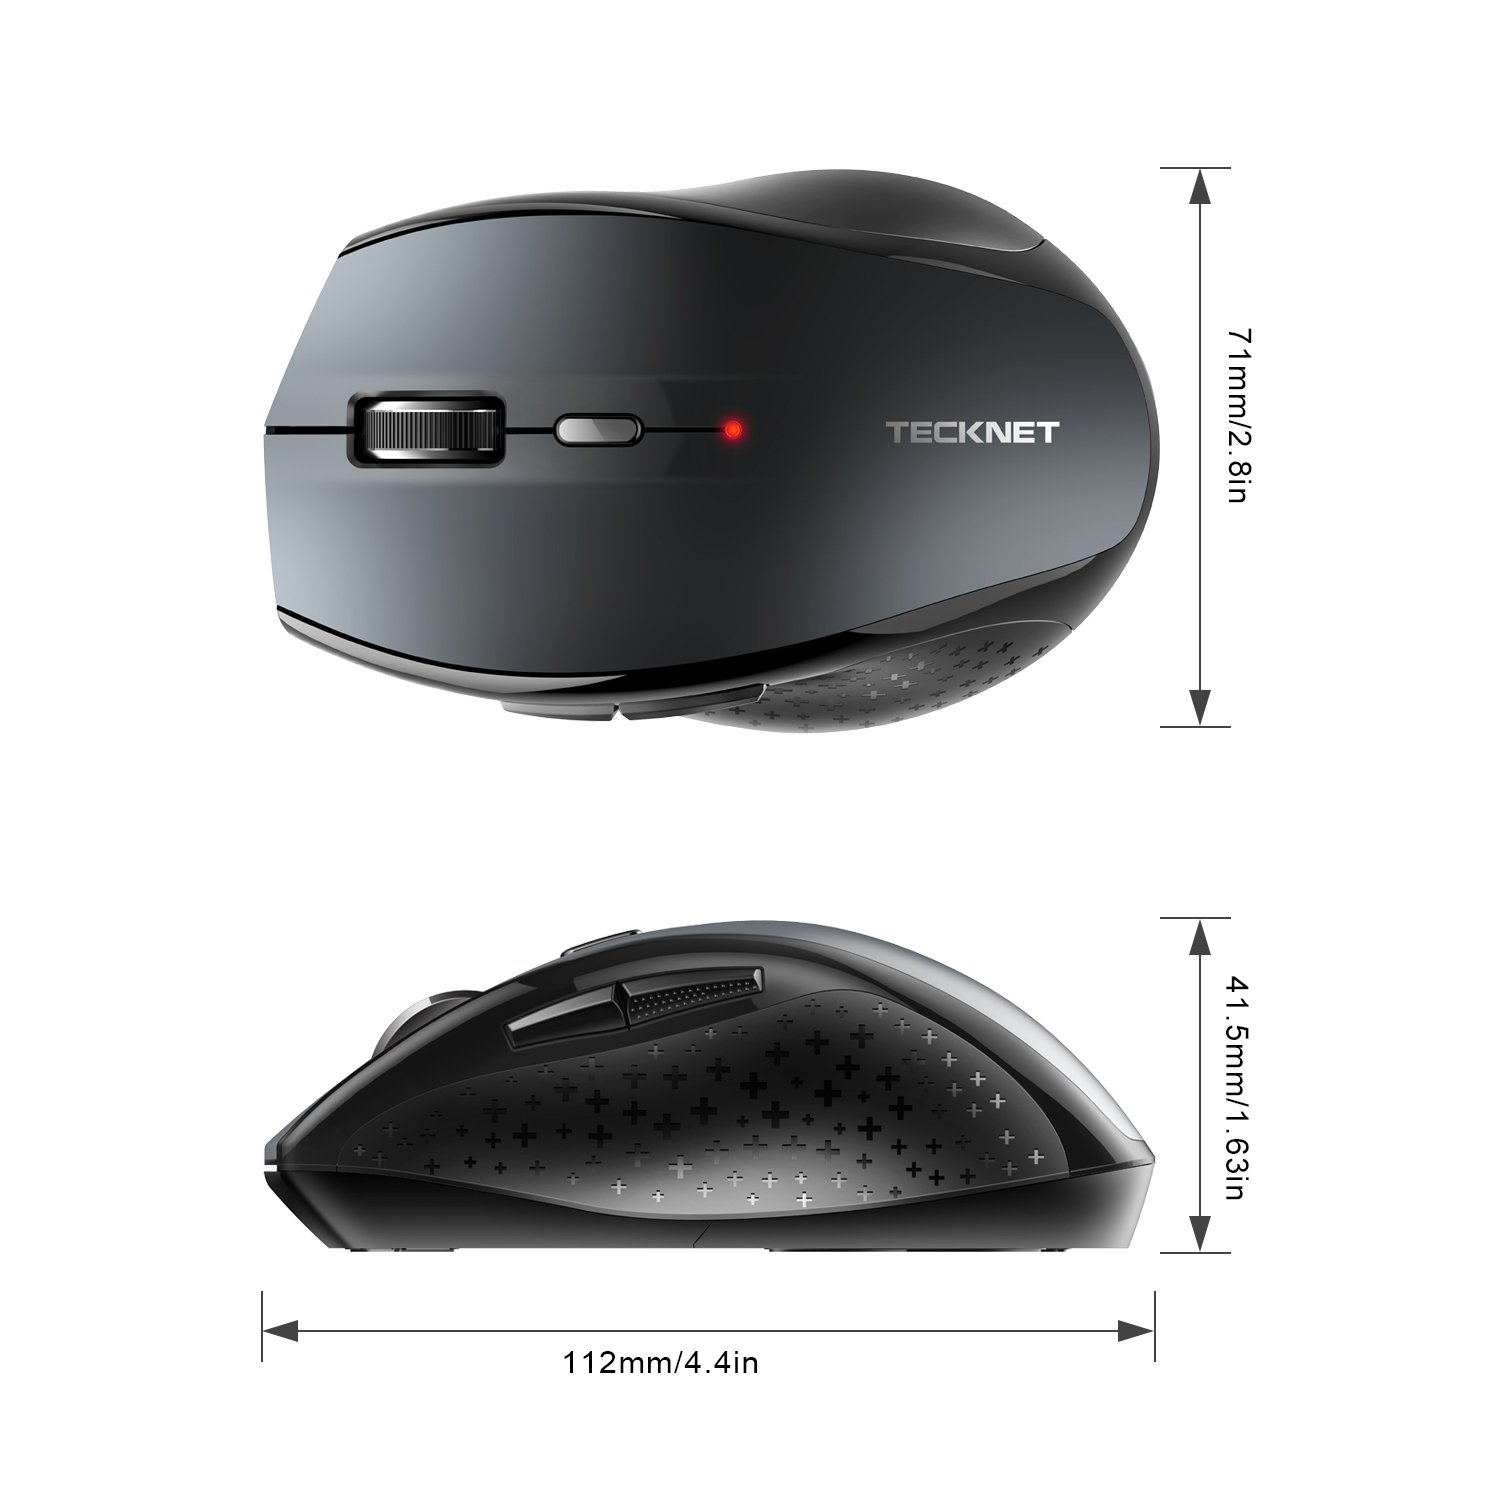 ce19ad8a16f Review for TeckNet Bluetooth Wireless Mouse, Grey (BM308) - Josh ...